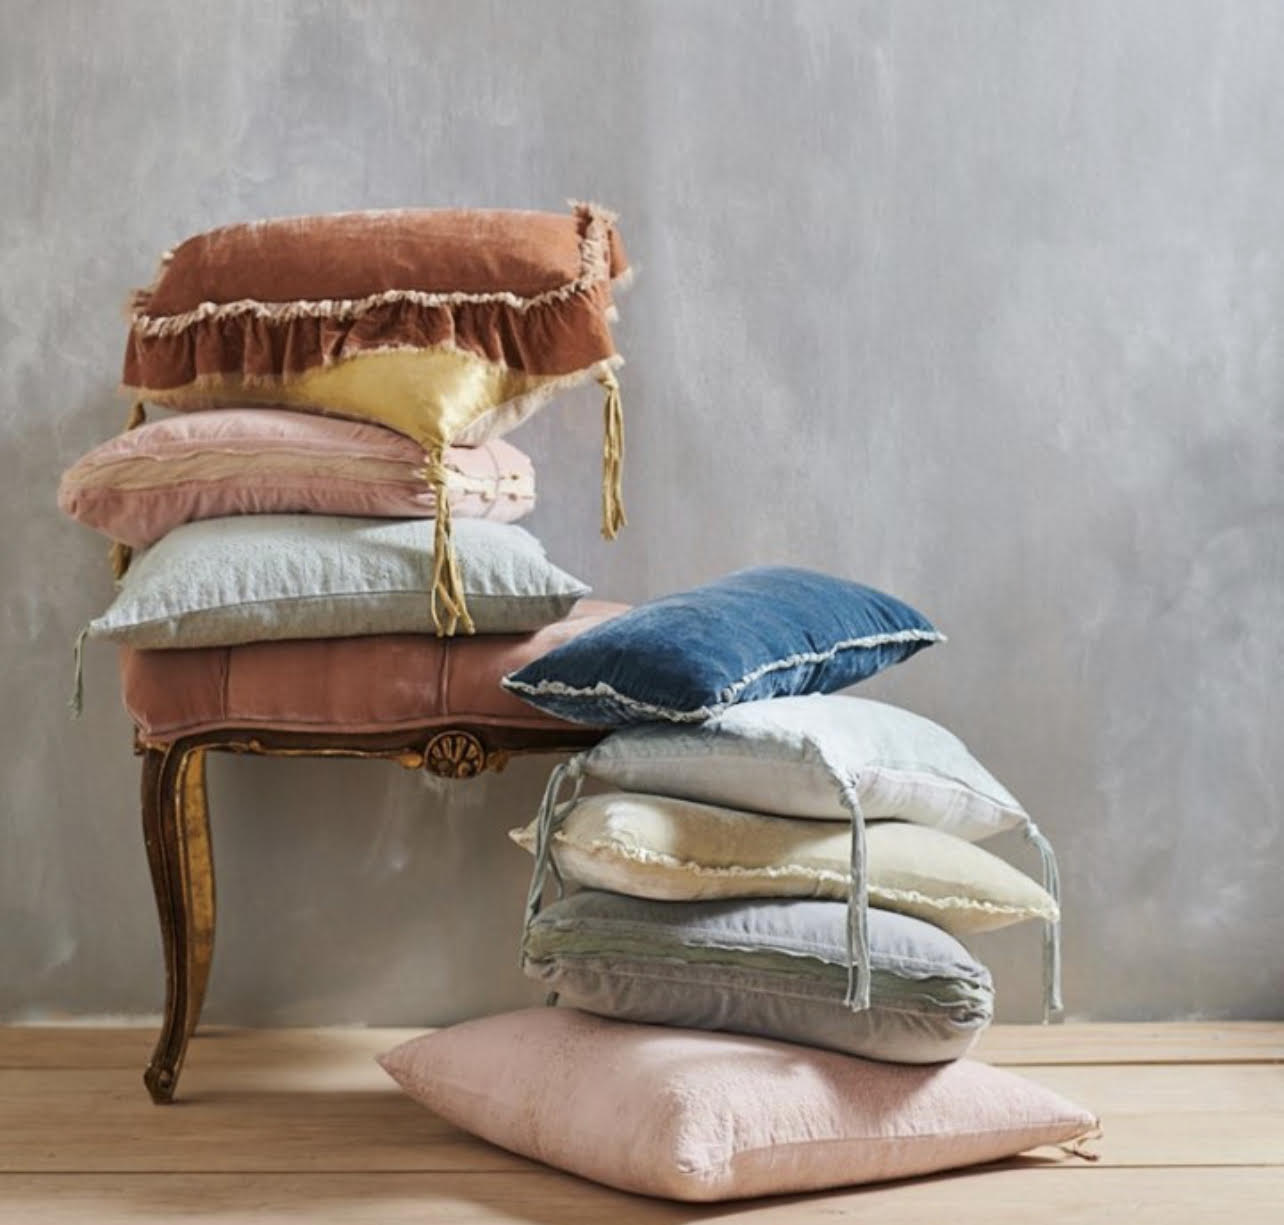 Bella Notte Luxury Linens, throw pillows and more available at La Farre Markt in Trussville, Alabama